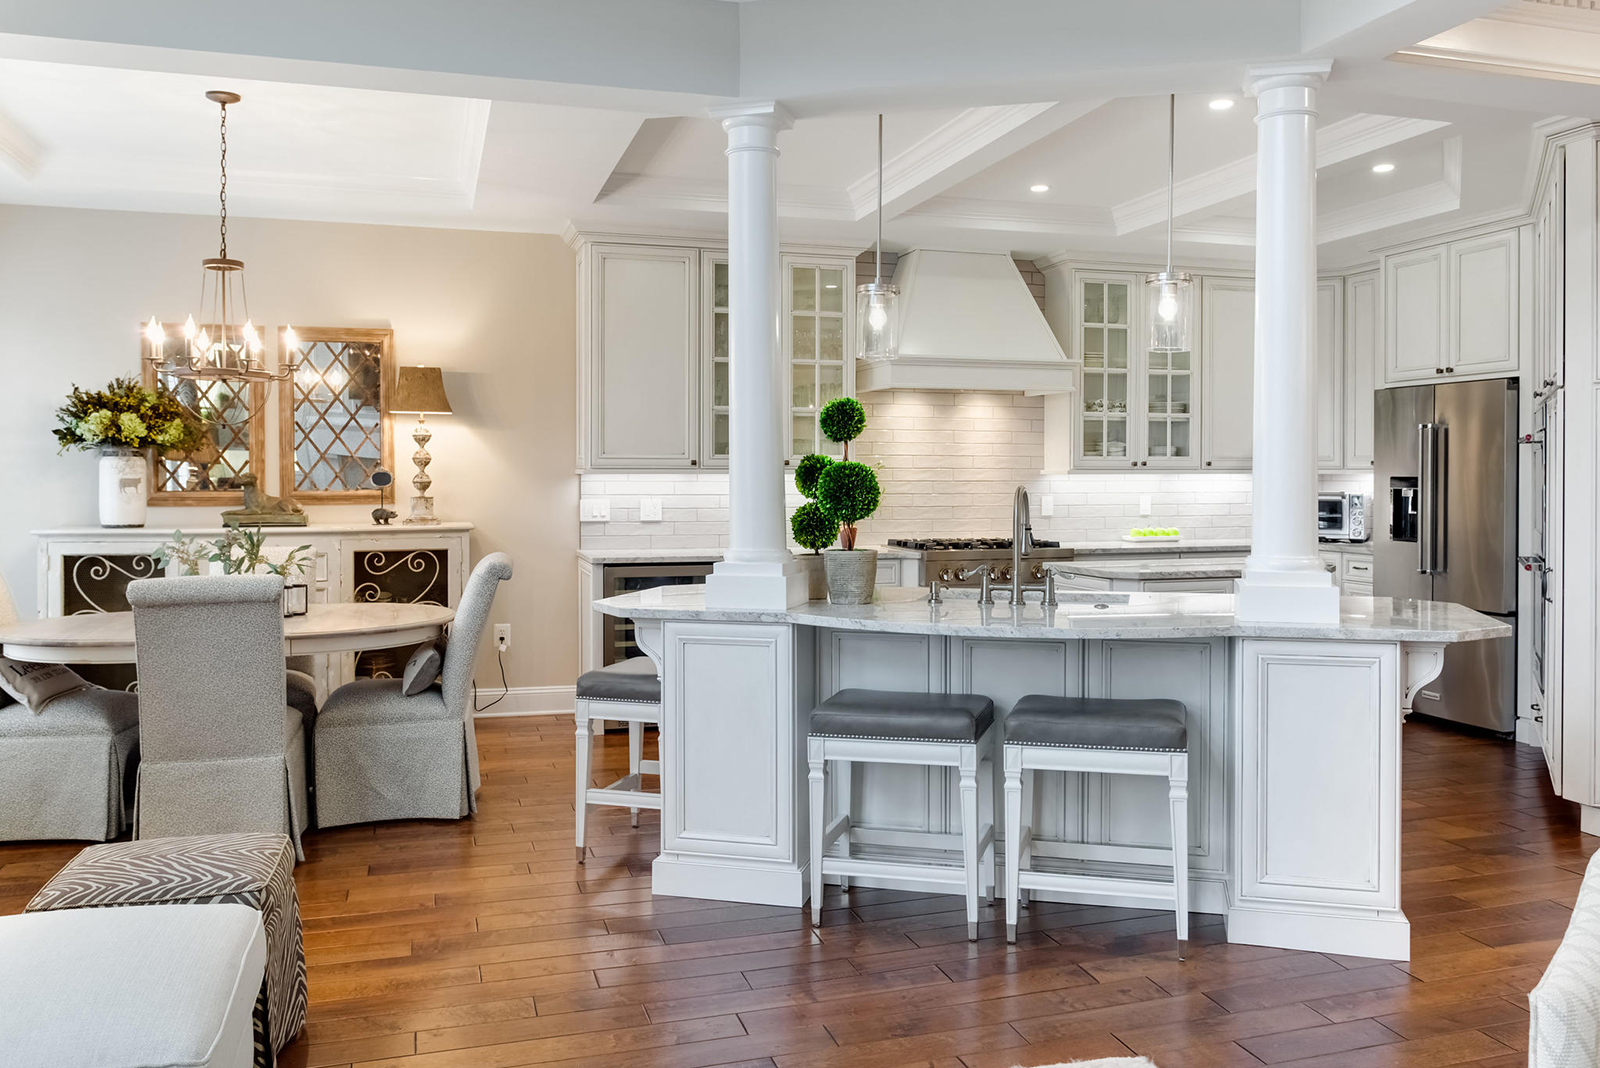 Reno Of The Month Transitional Kitchen Design Demystified Reston Now